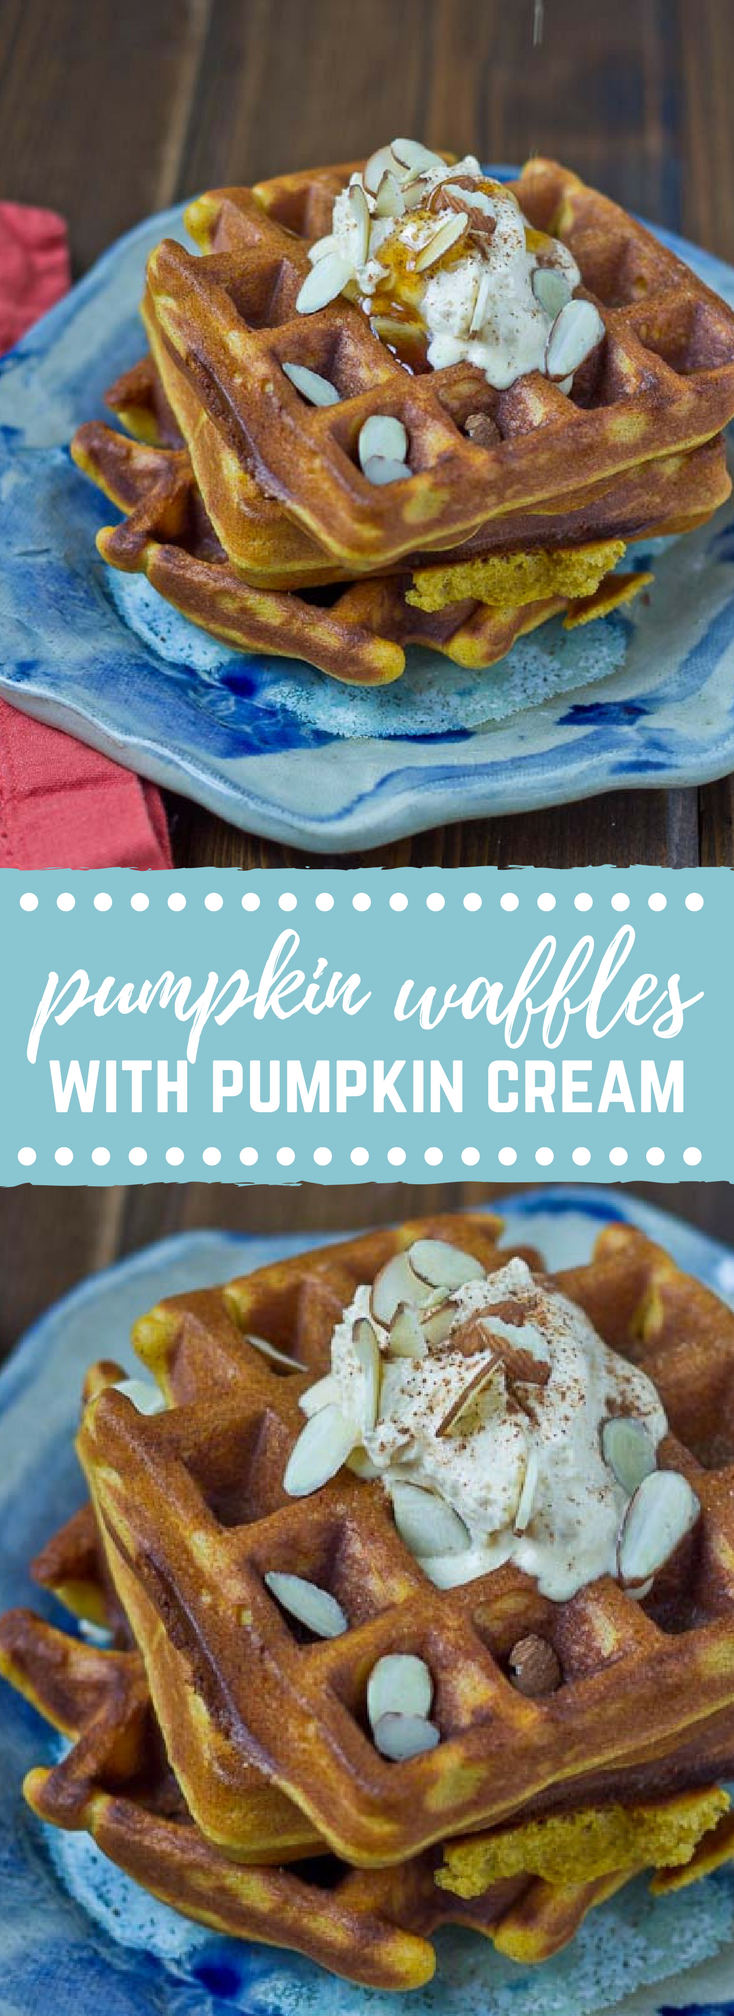 These Pumpkin Waffles boast of fall flavors and are made in the BLENDER!! They are decadent, fluffy, and pumpkiny. Don't make them without the Pumpkin Spice Cream… it's melt in your mouth yum yum.